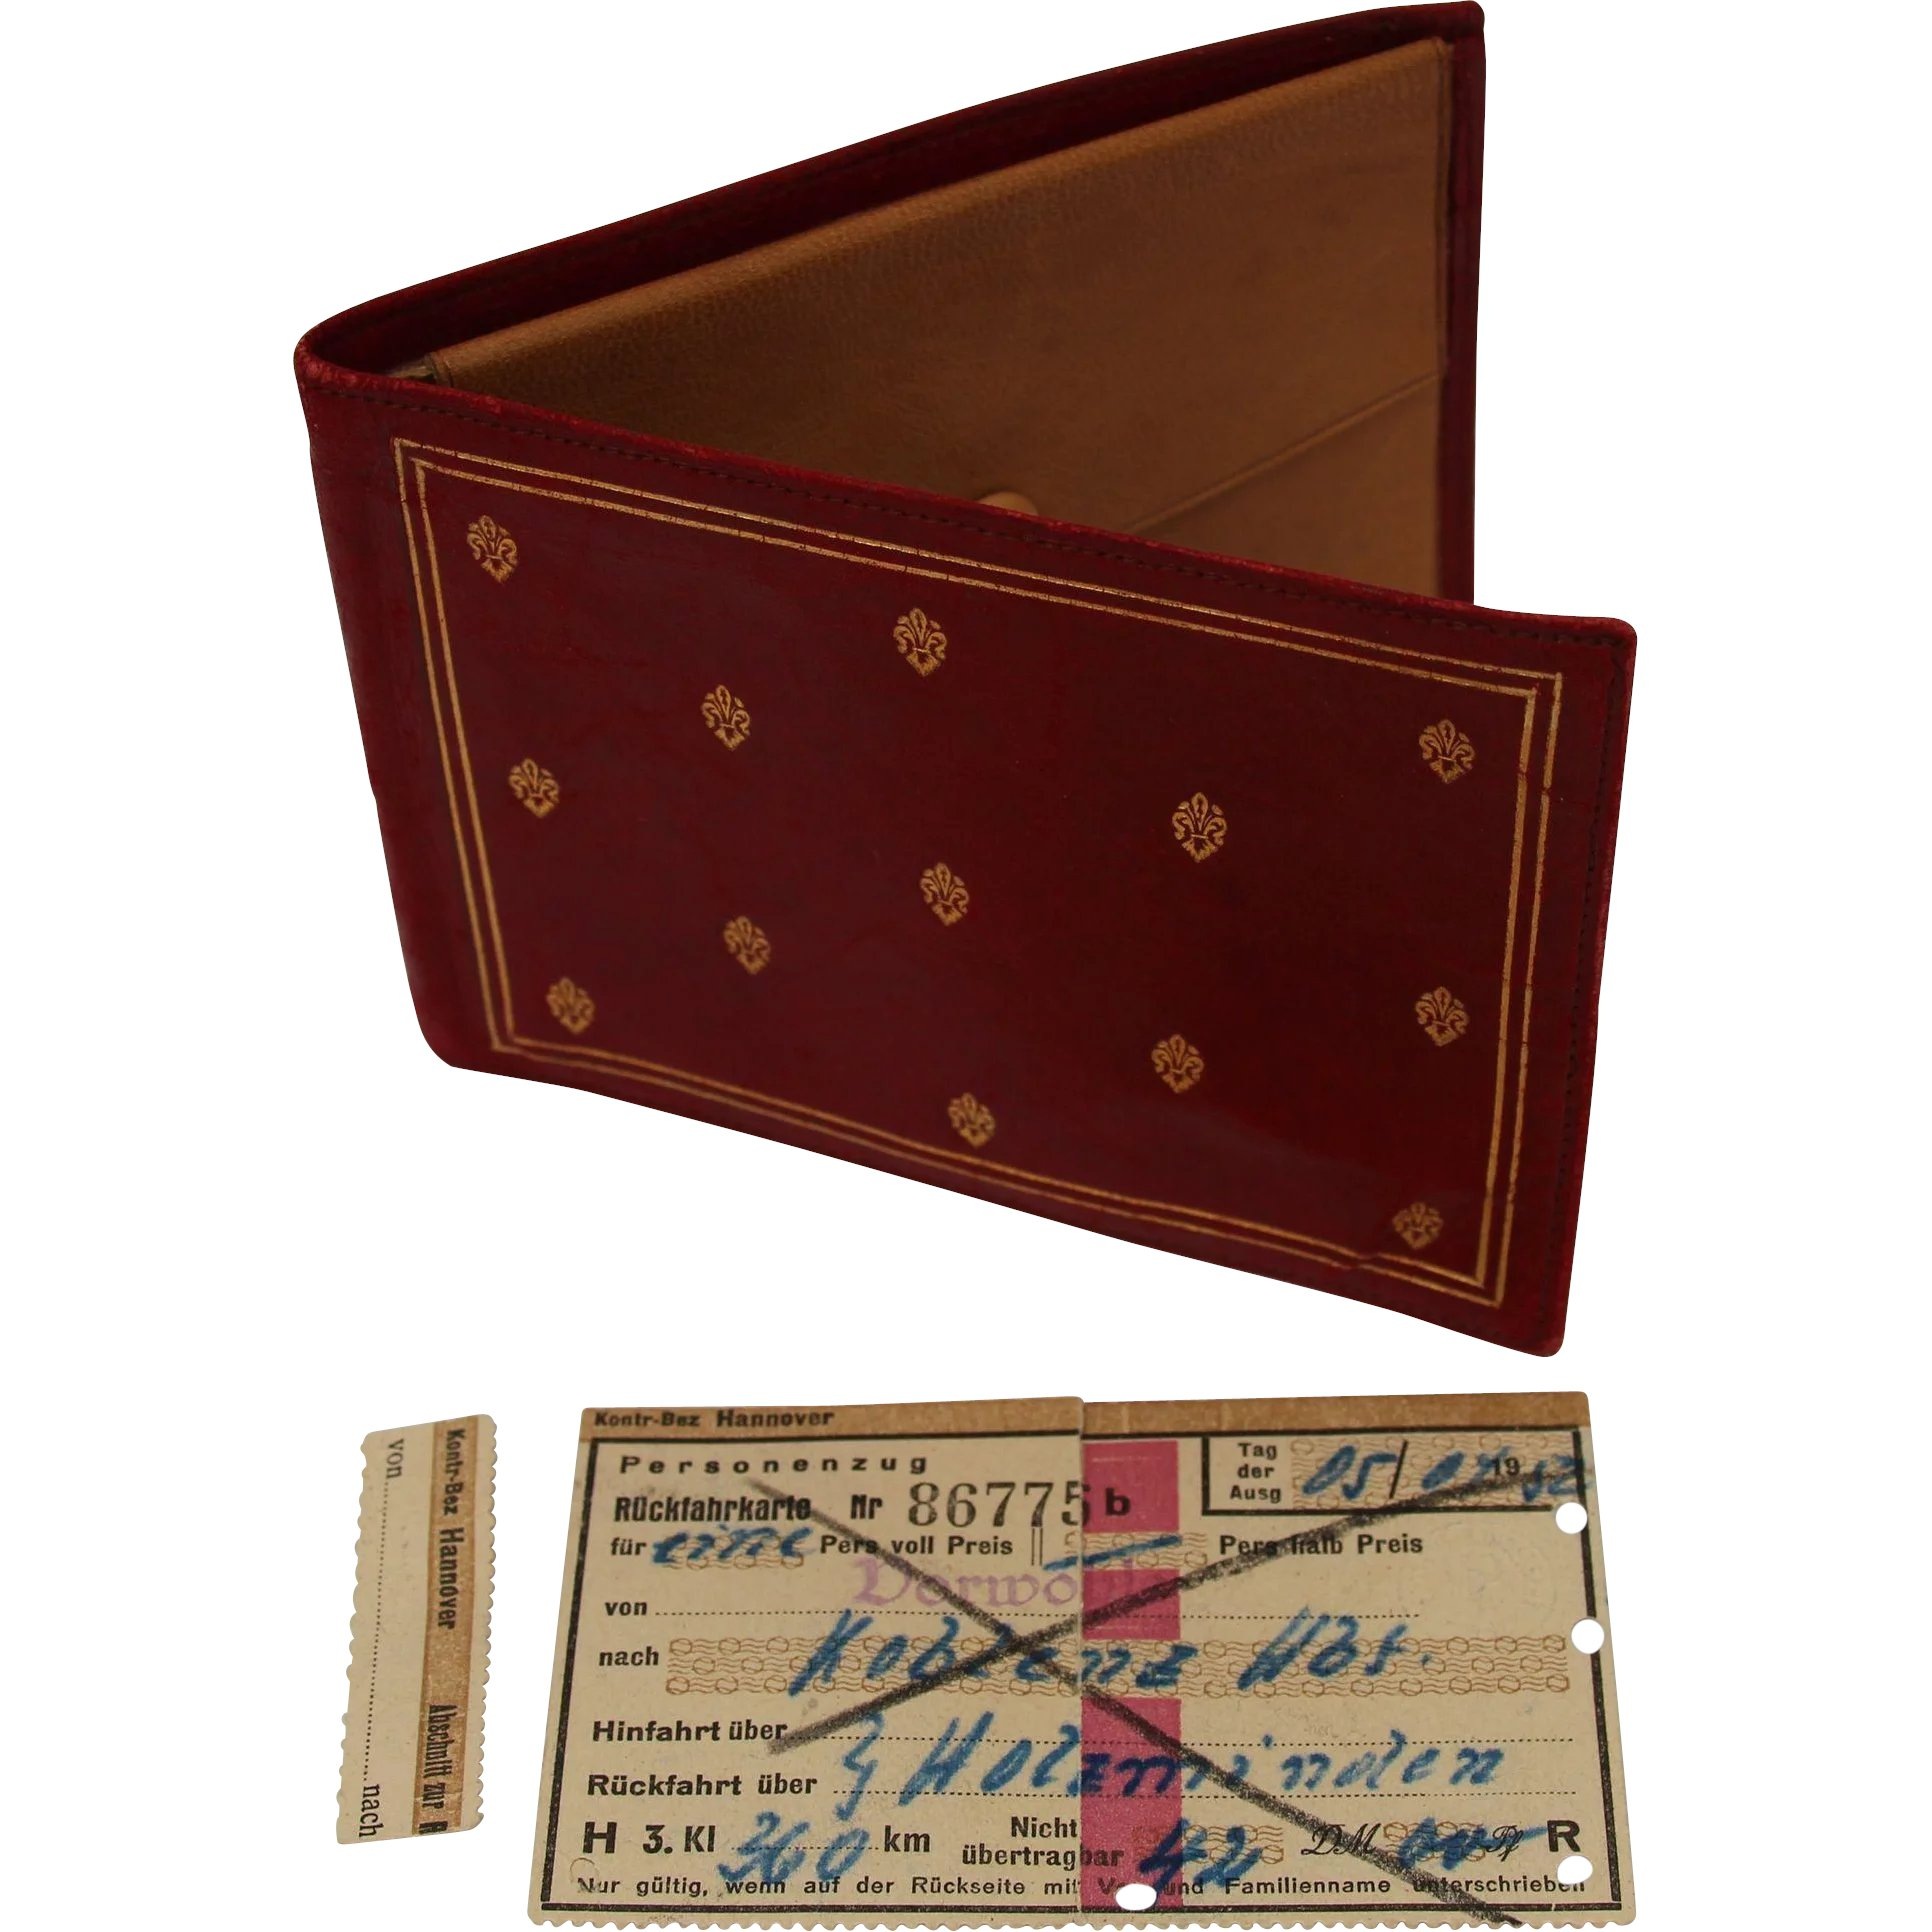 93860edd4e321 Vine 1950s Red Leather Wallet With Original Owners Train Ticket